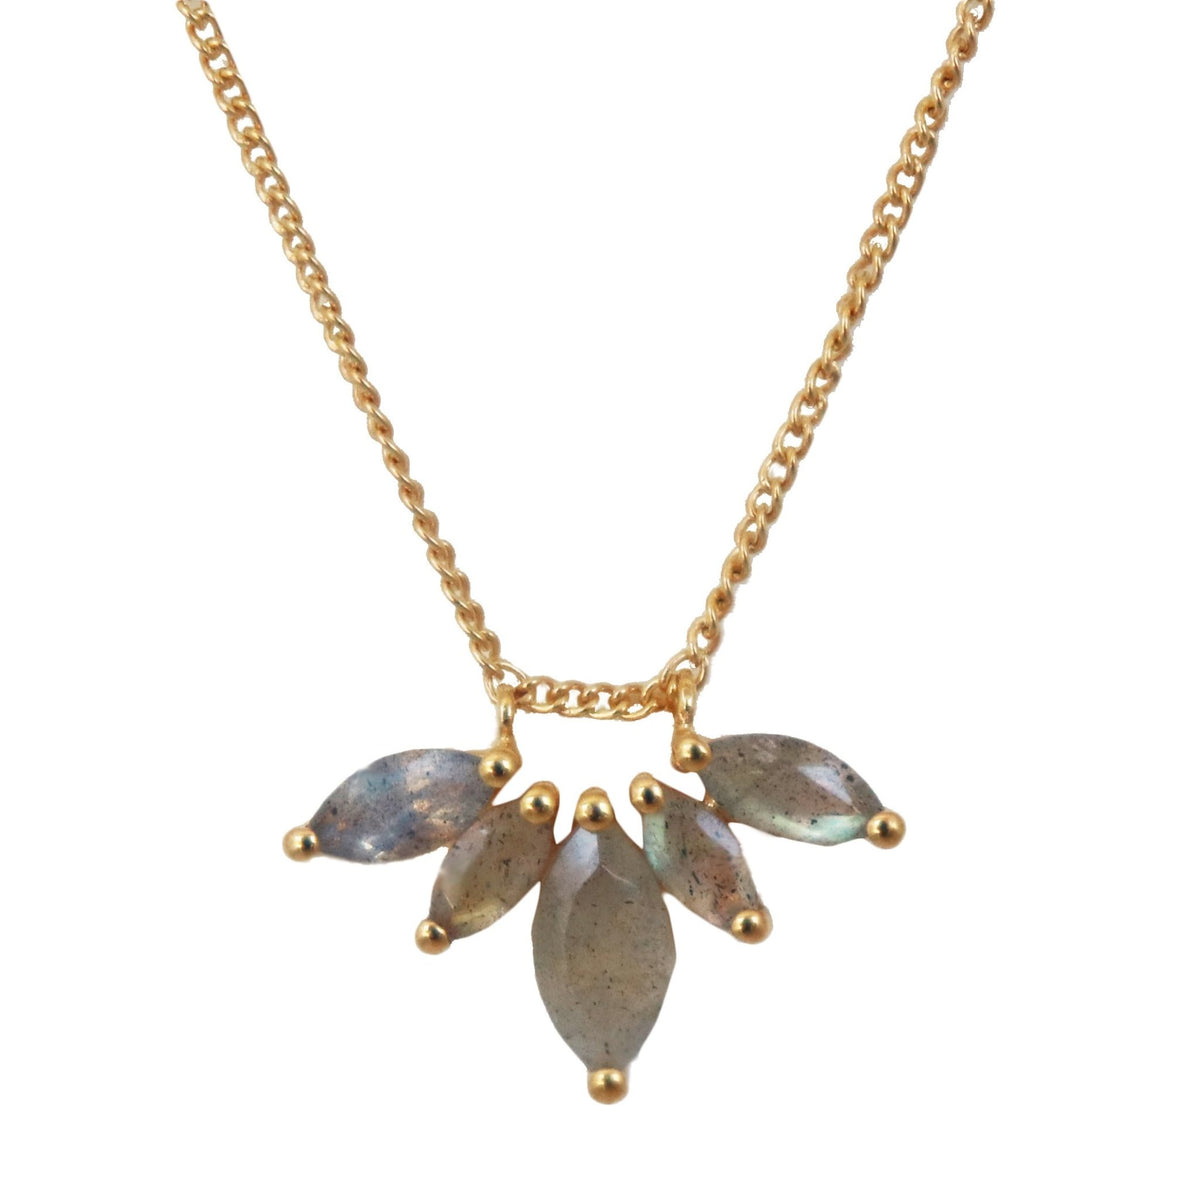 UNITY CROWN NECKLACE - LABRADORITE & GOLD - SO PRETTY CARA COTTER